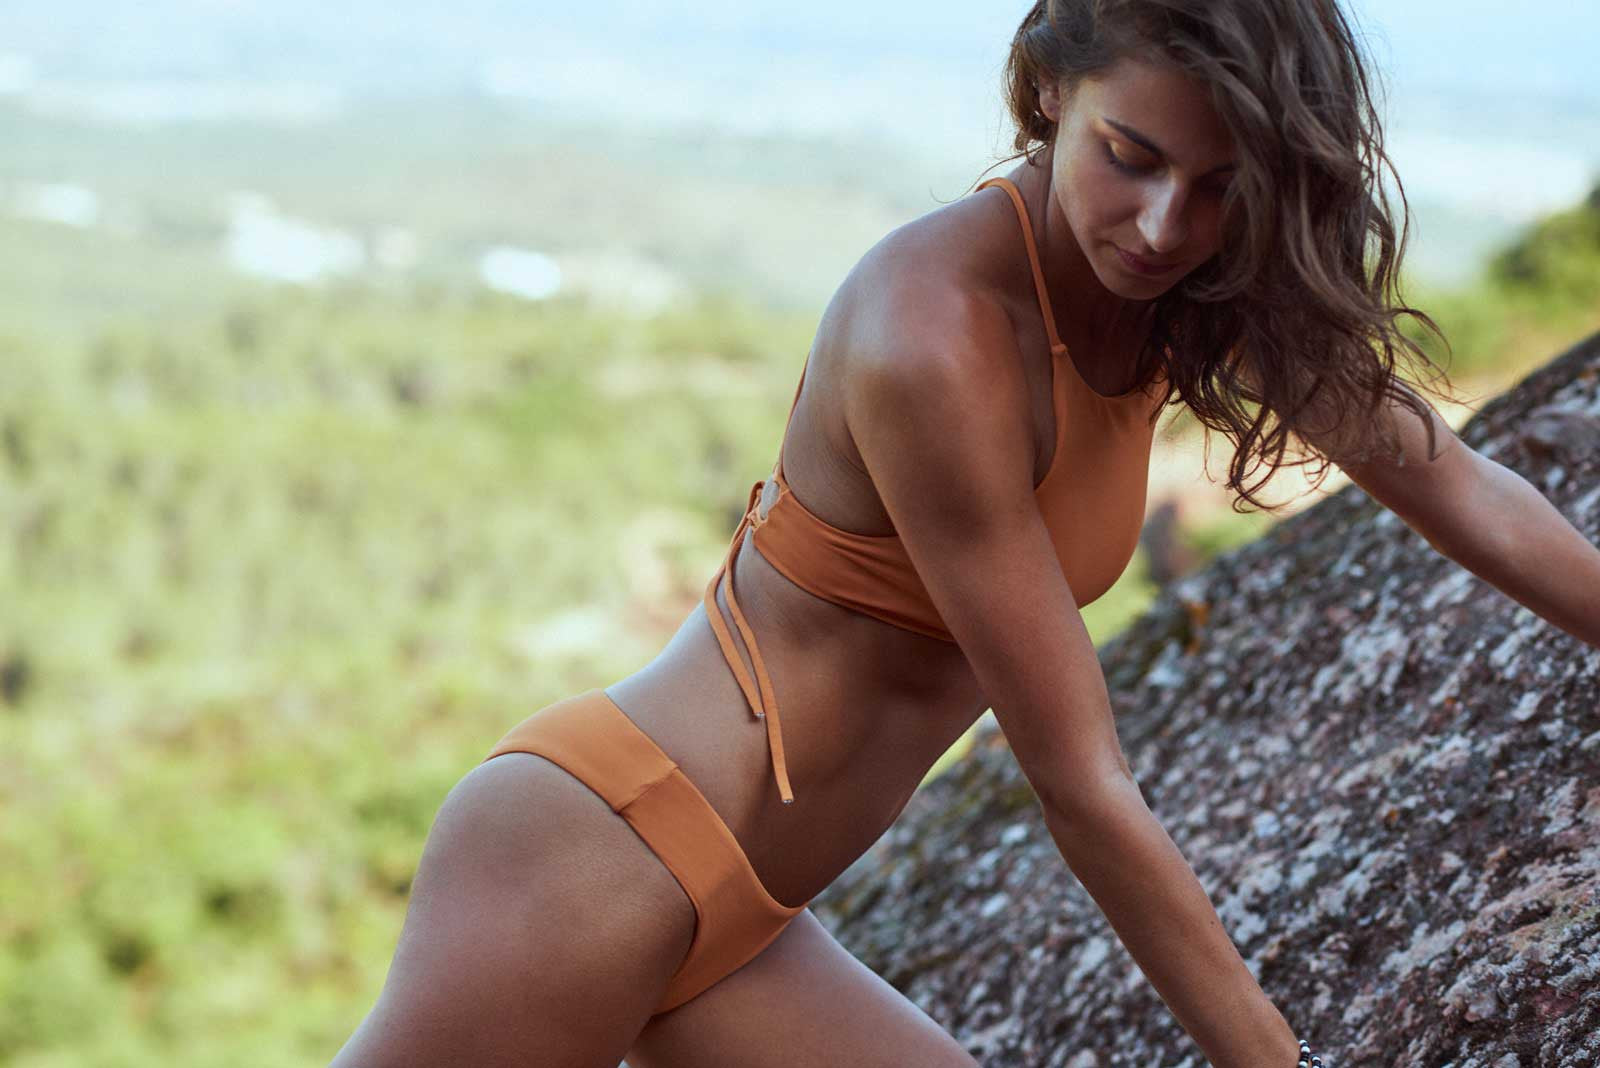 Bolama Halter Bikini Top and Kaloum Bottom in Amber, By Serendipity